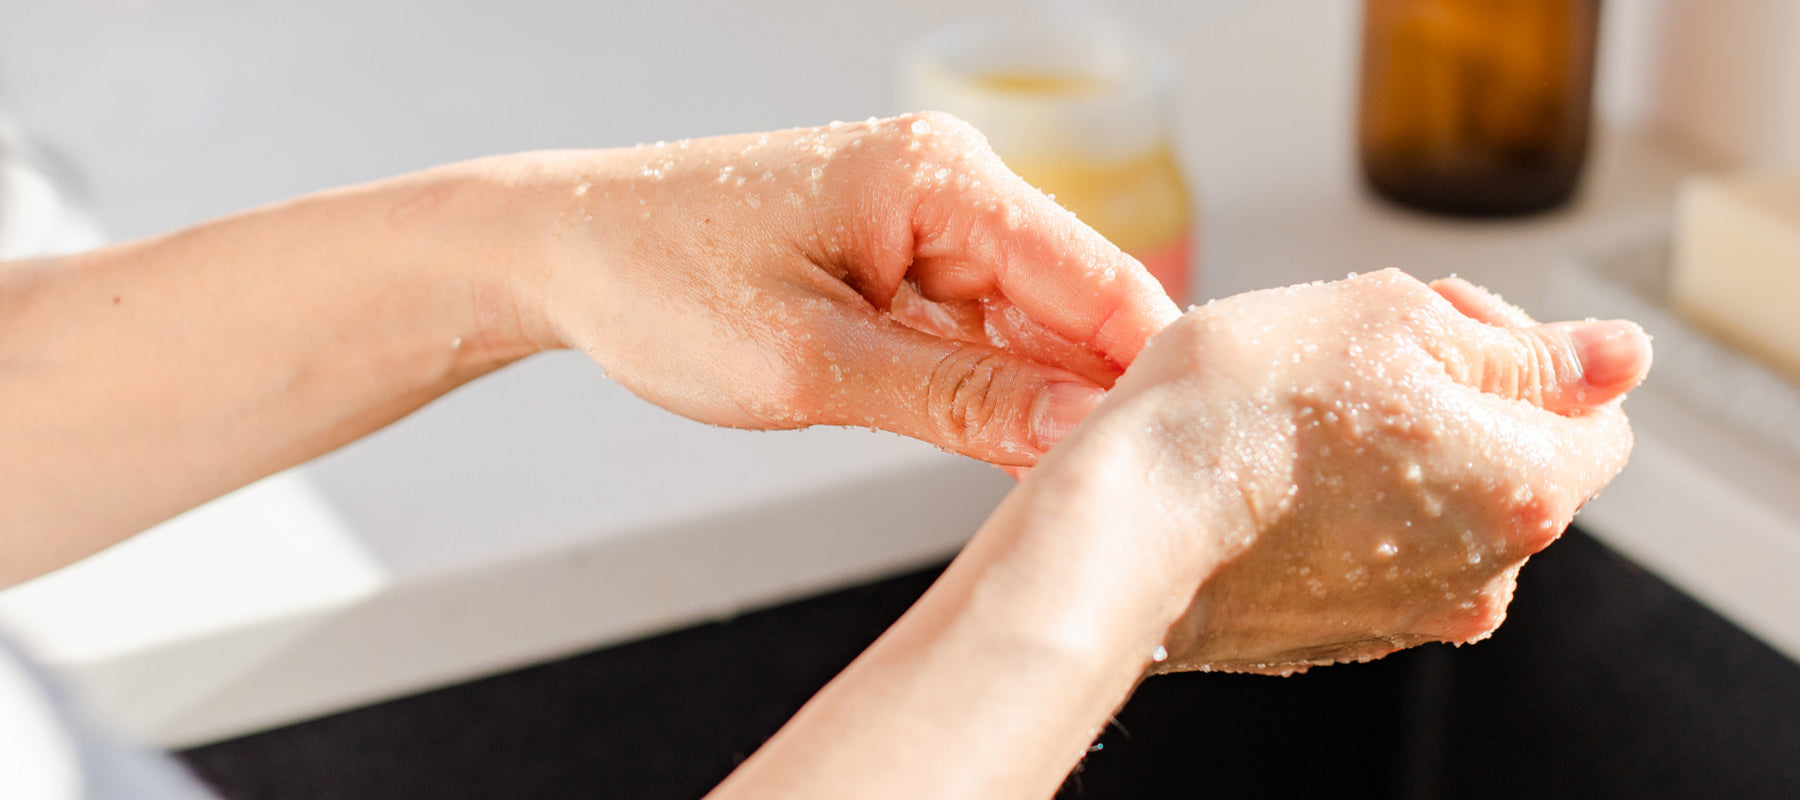 Hands over a sink exfoliating with Rocky Mountain Soap Company body scrub.